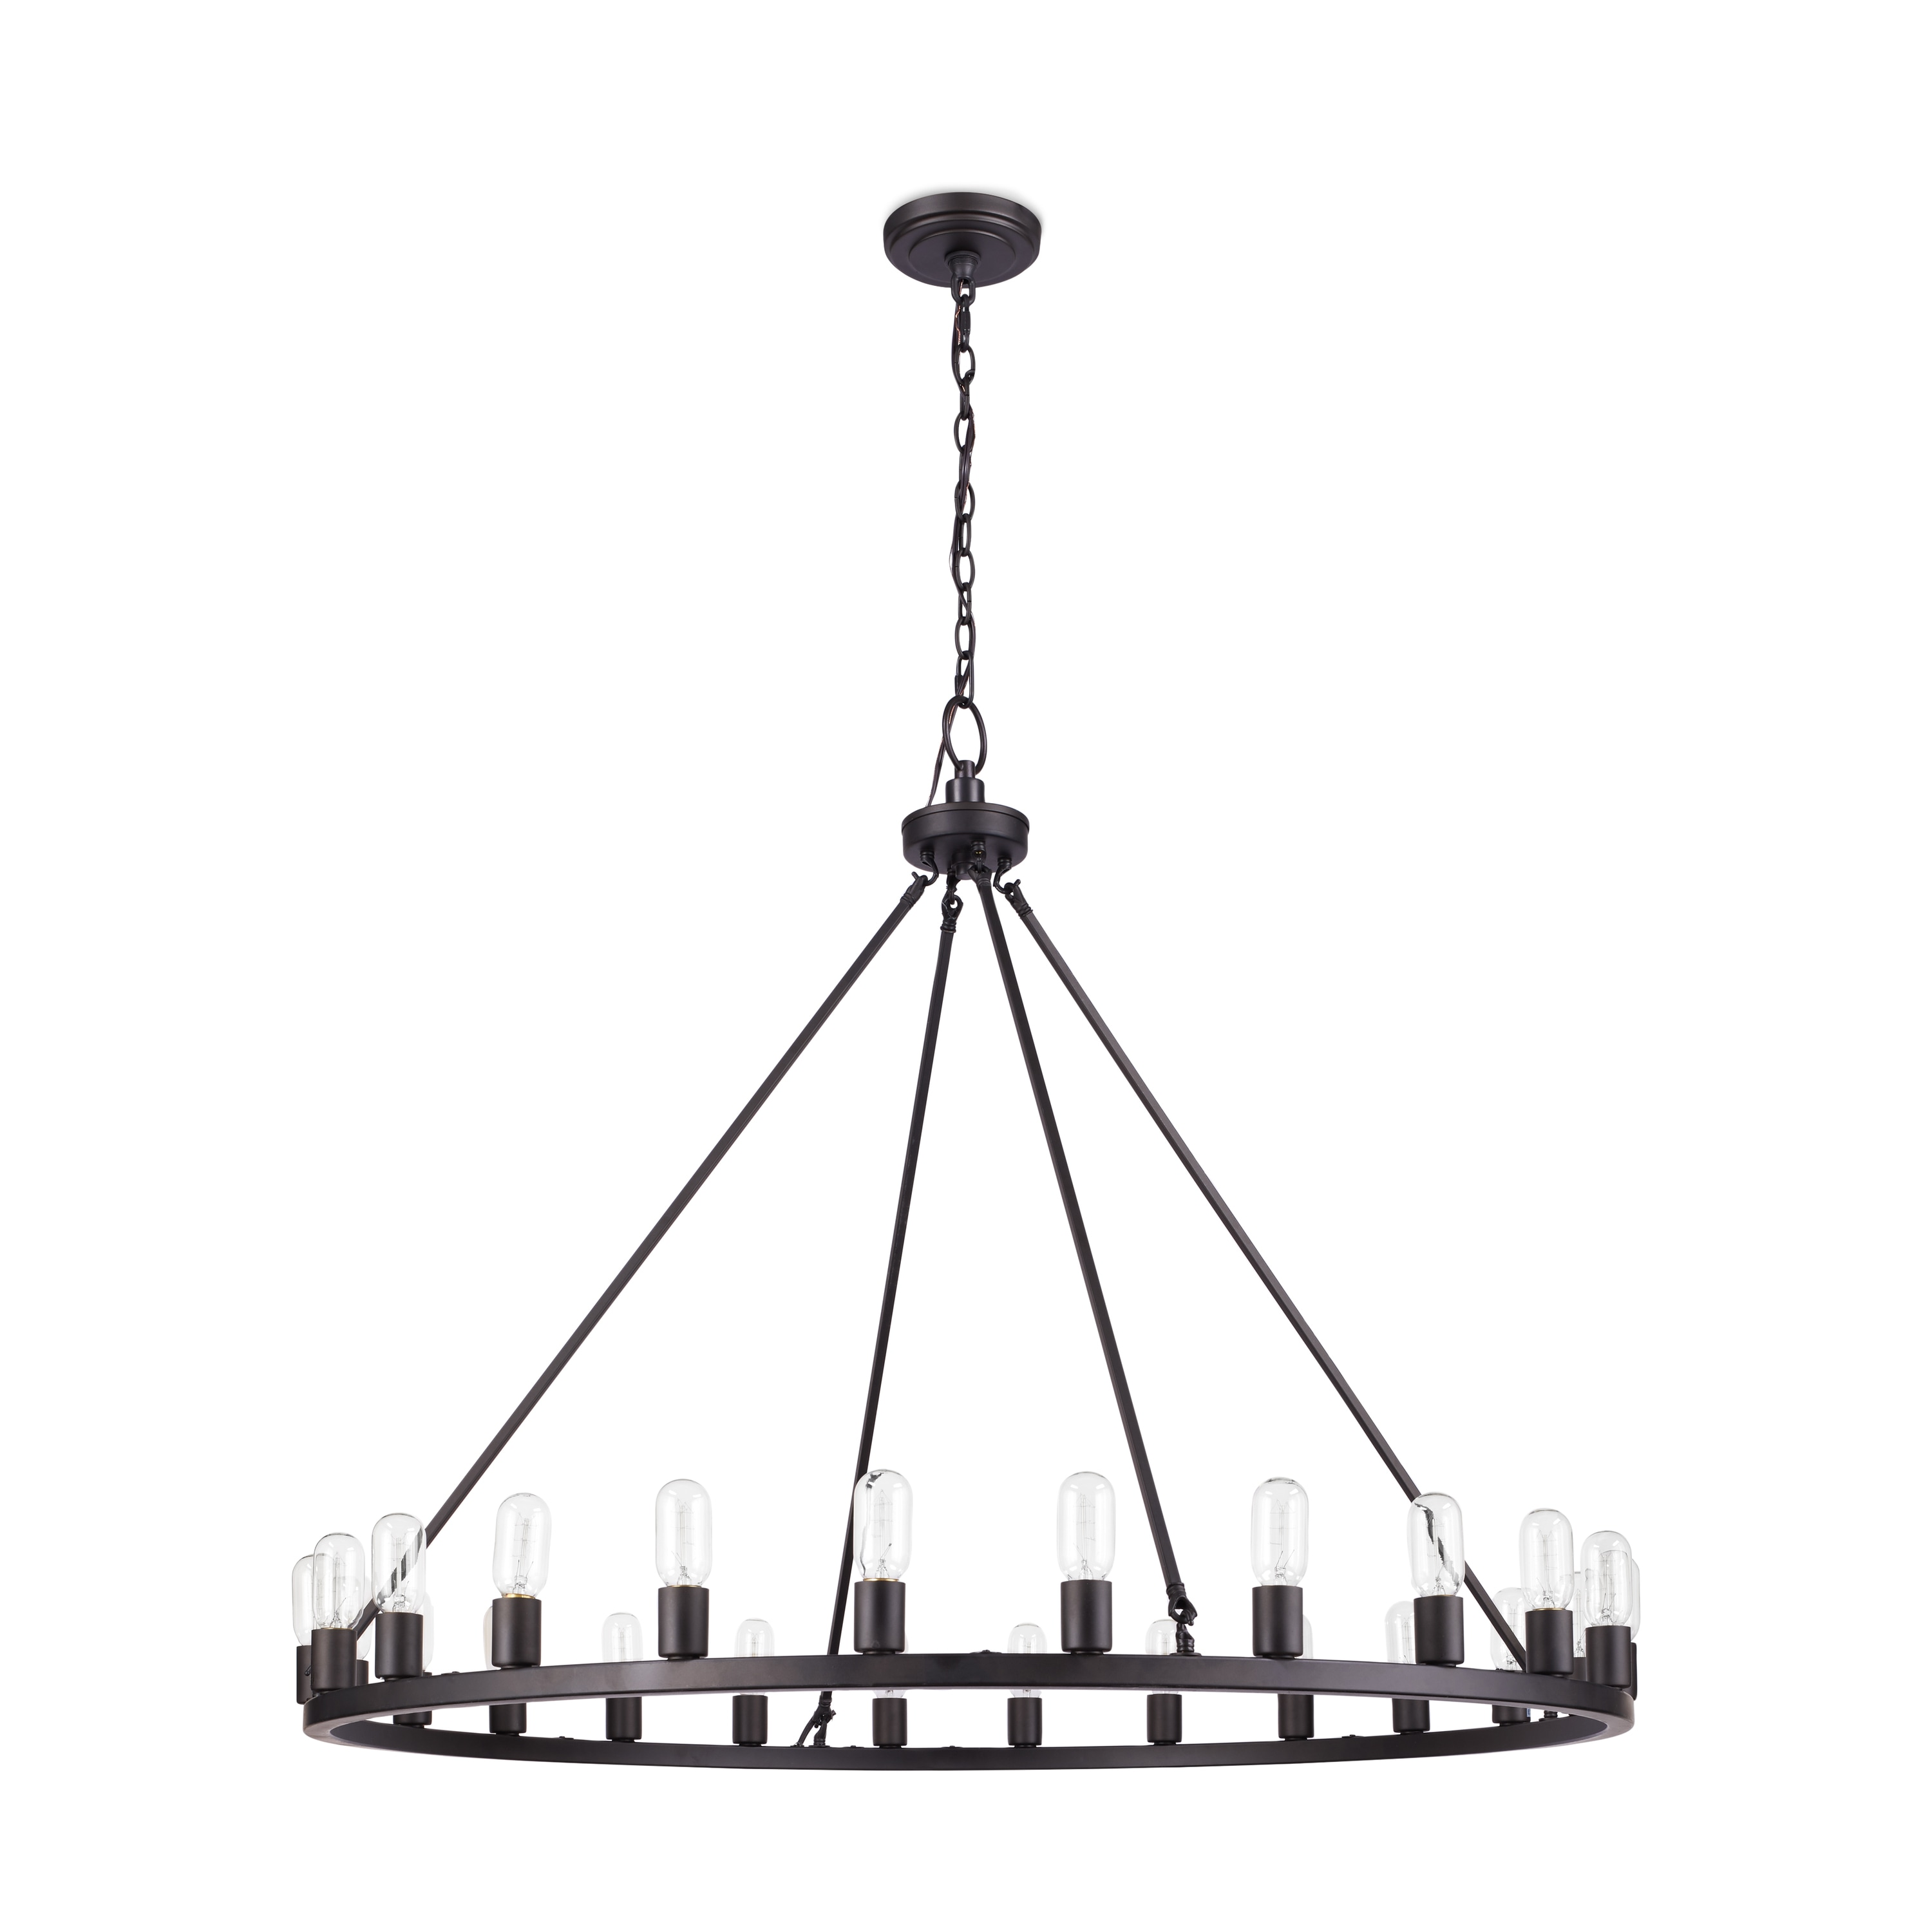 Hemsworth oil rubbed bronze 24 light chandelier free shipping hemsworth oil rubbed bronze 24 light chandelier free shipping today overstock 16100946 arubaitofo Image collections